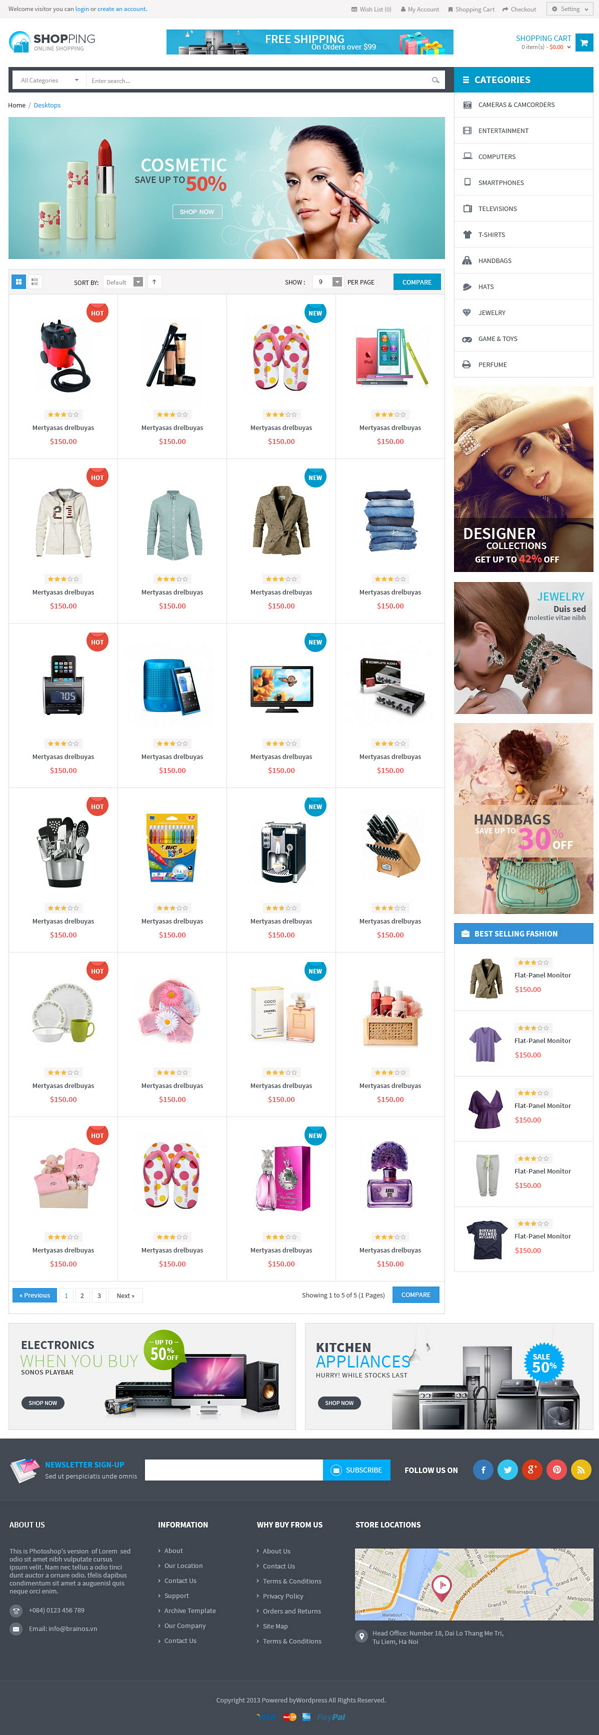 Lexus Shopping is a Responsive Opencart Template suitable for any kind of Bags Store, Gift Shop, ...